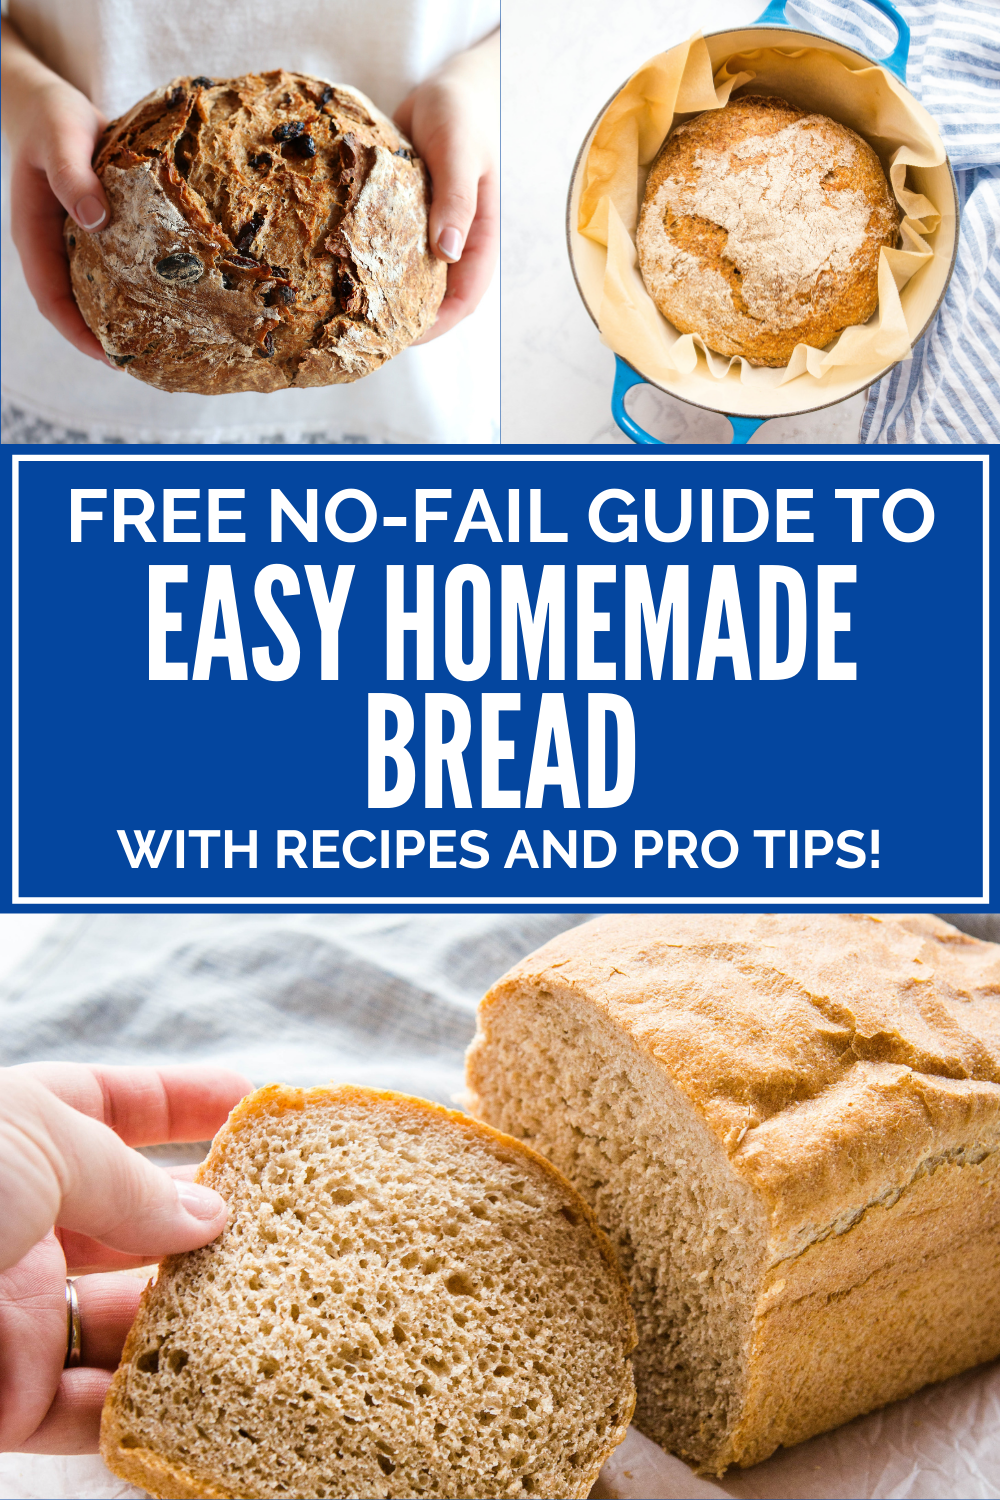 FREE No Fail Guide to Easy Homemade Bread! The BEST homemade bread recipes anyone can make, with easy pro tips! Sign up on thebusybaker.ca! #recipes #freecourse #ecourse #homemadebread #howtomakebread #homemade #protips #bakingtips #howtobake via @busybakerblog